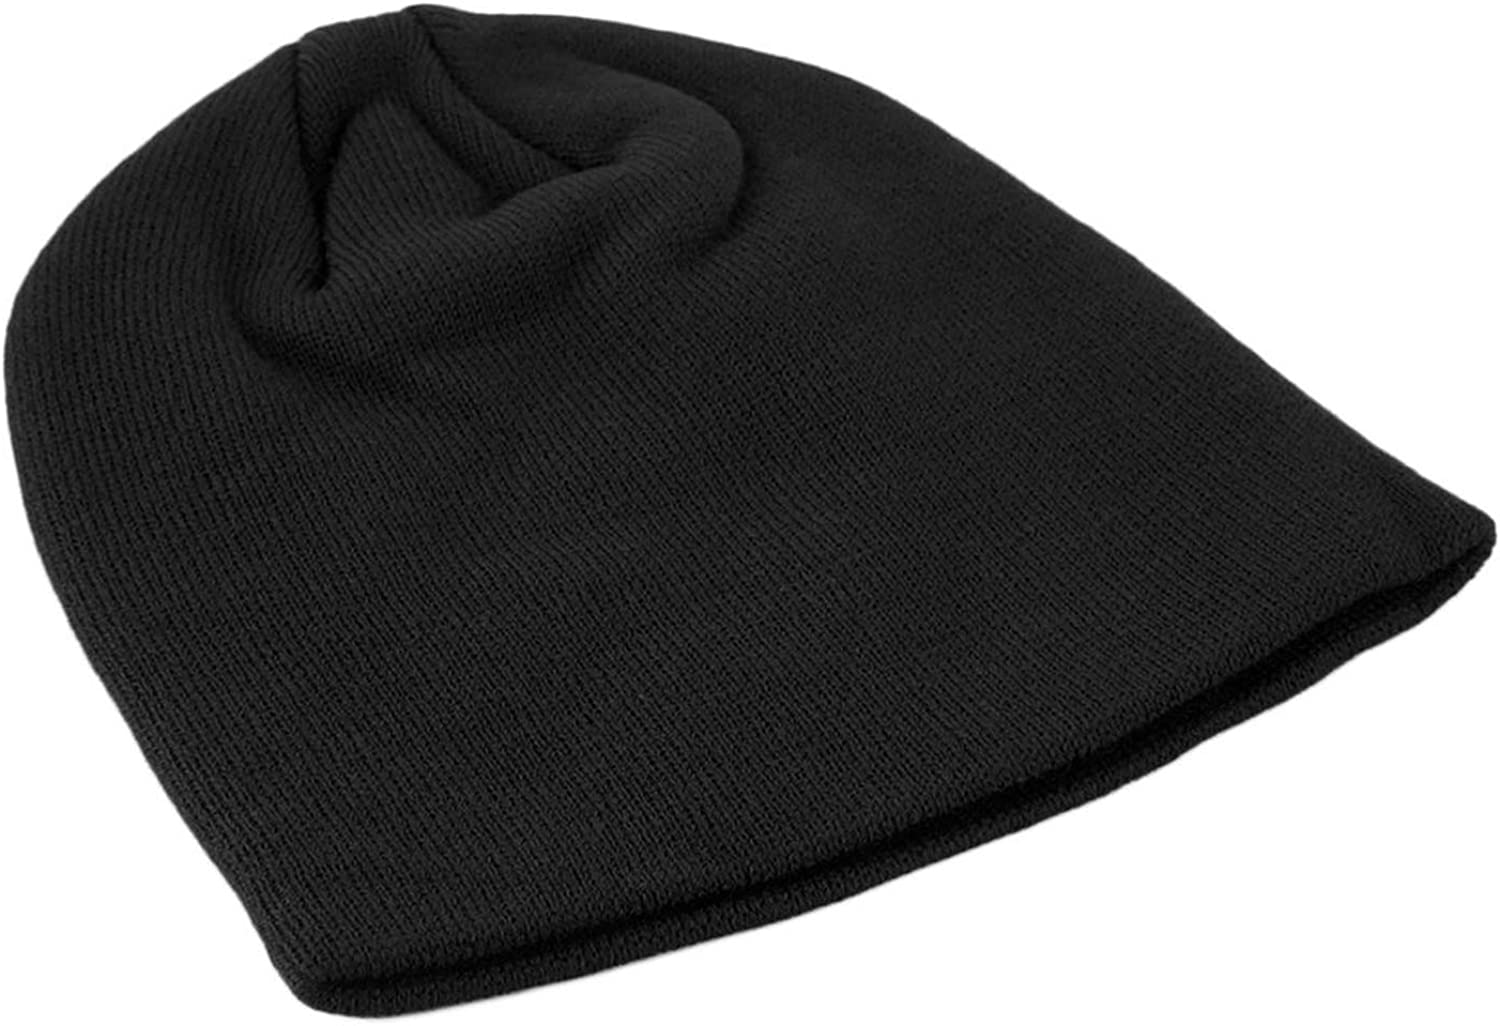 Ron Kite Fashion Soft Comfortable Hat Cap Solid Knitted Beanie Winter Warm Hat Unisex Casual Outdoor Hat